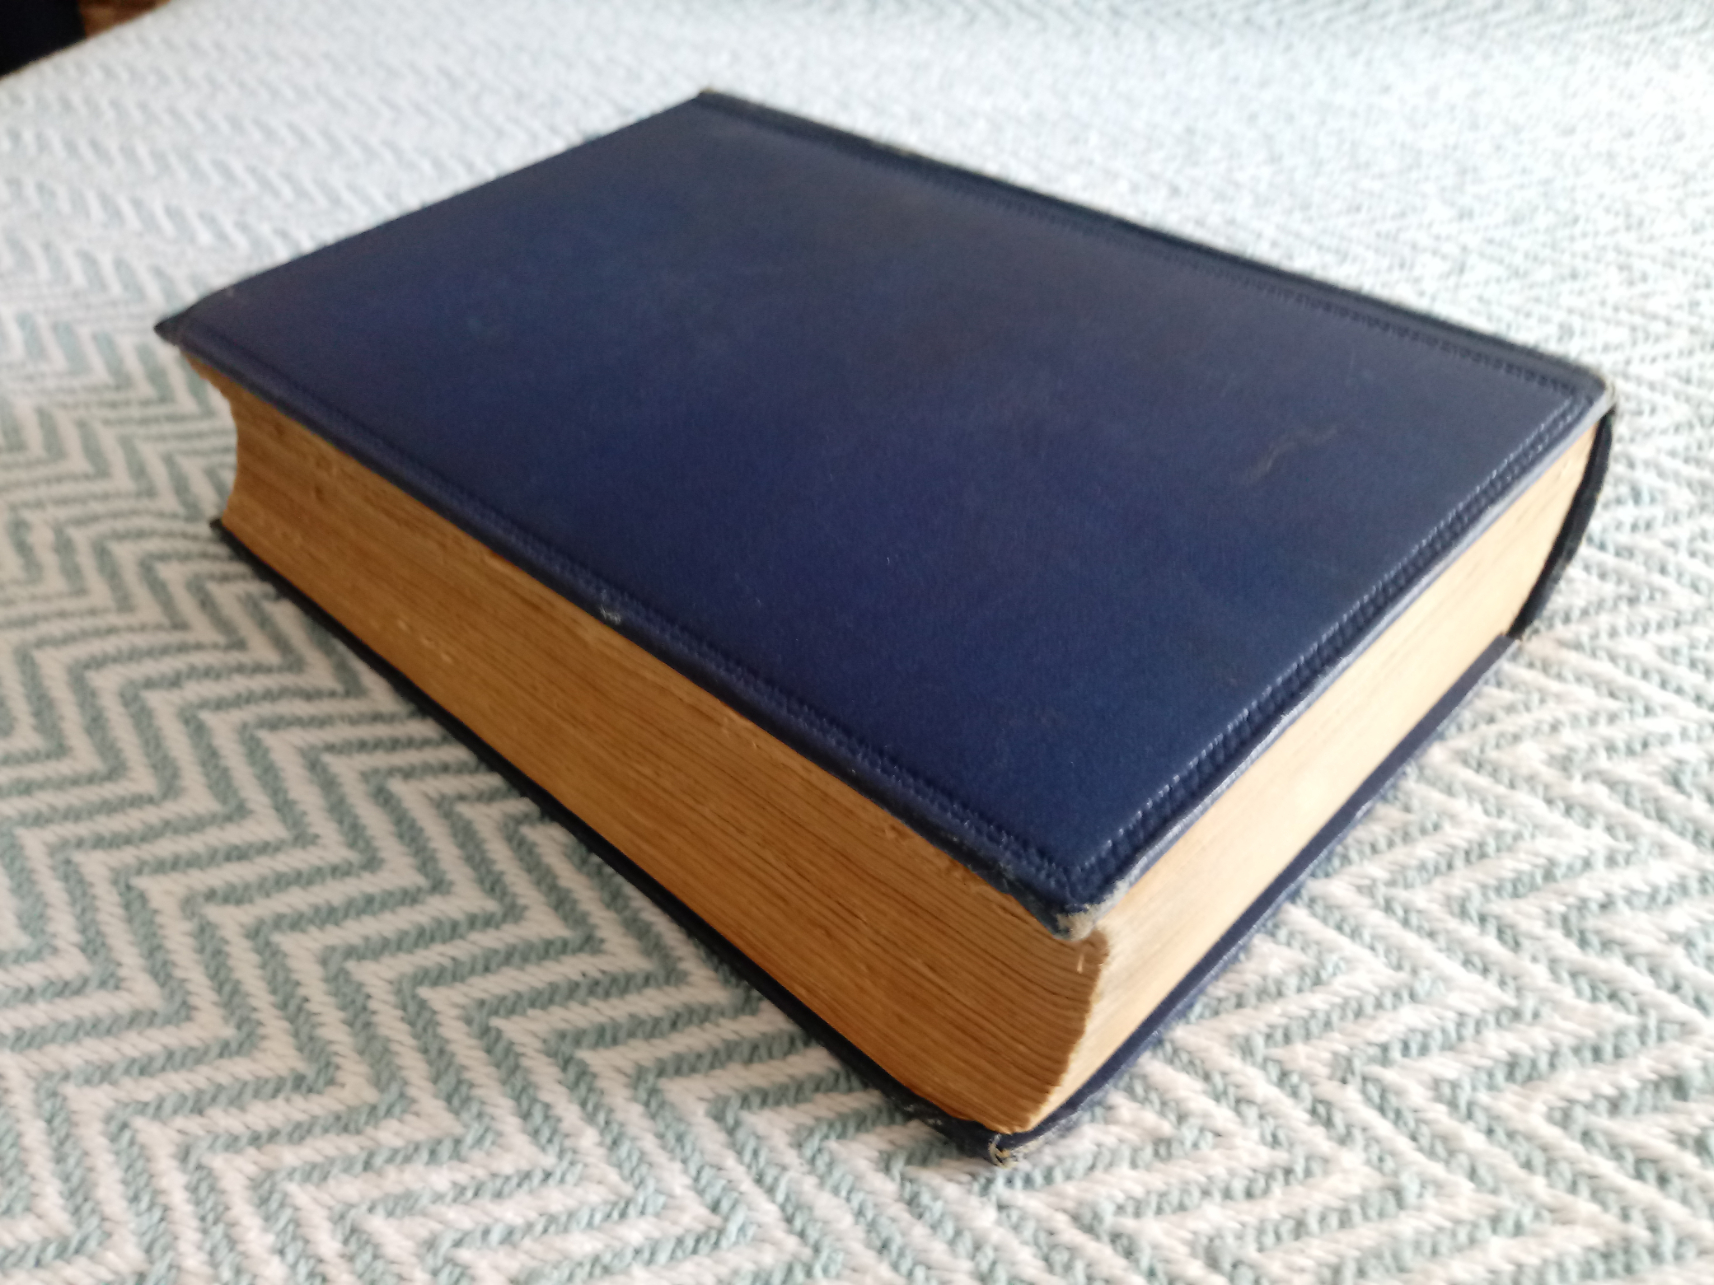 The Oxford book of English Verse 1250-1900 edited by Arthur Qquiller-Couch 1084 pages Published 1912 - Image 2 of 4